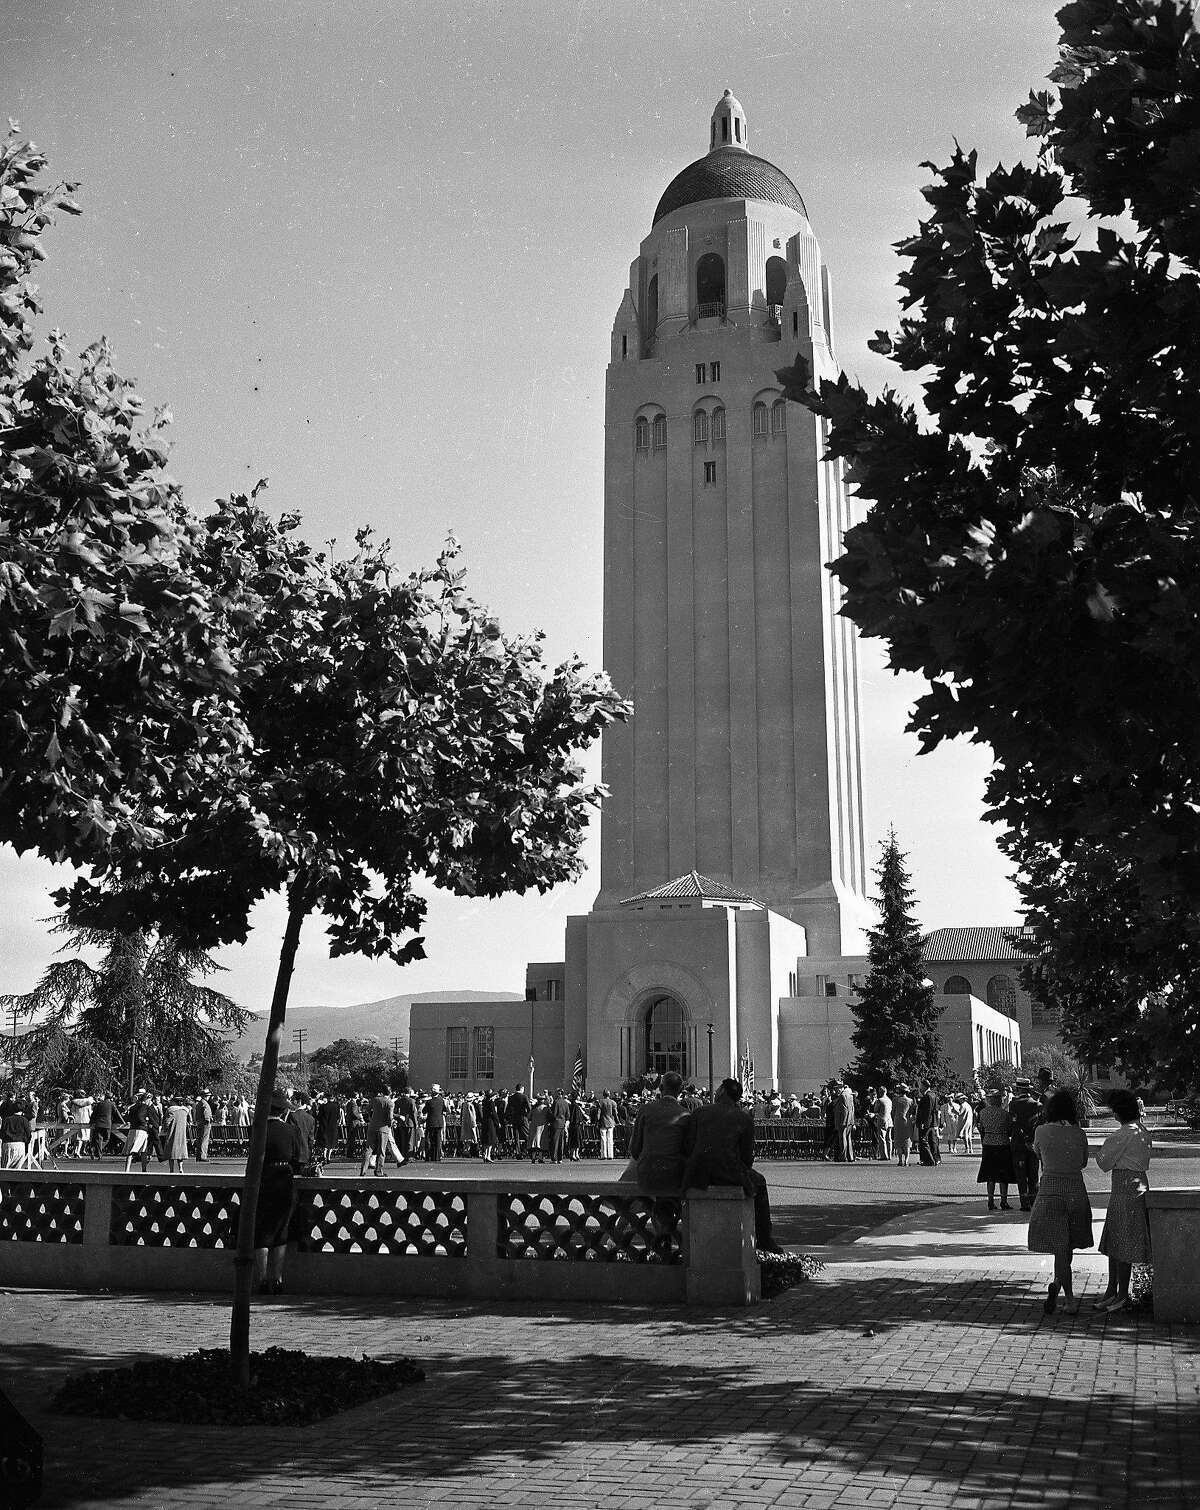 Hoover Institution Tower on the Stanford University Photos dated 07/9/1962